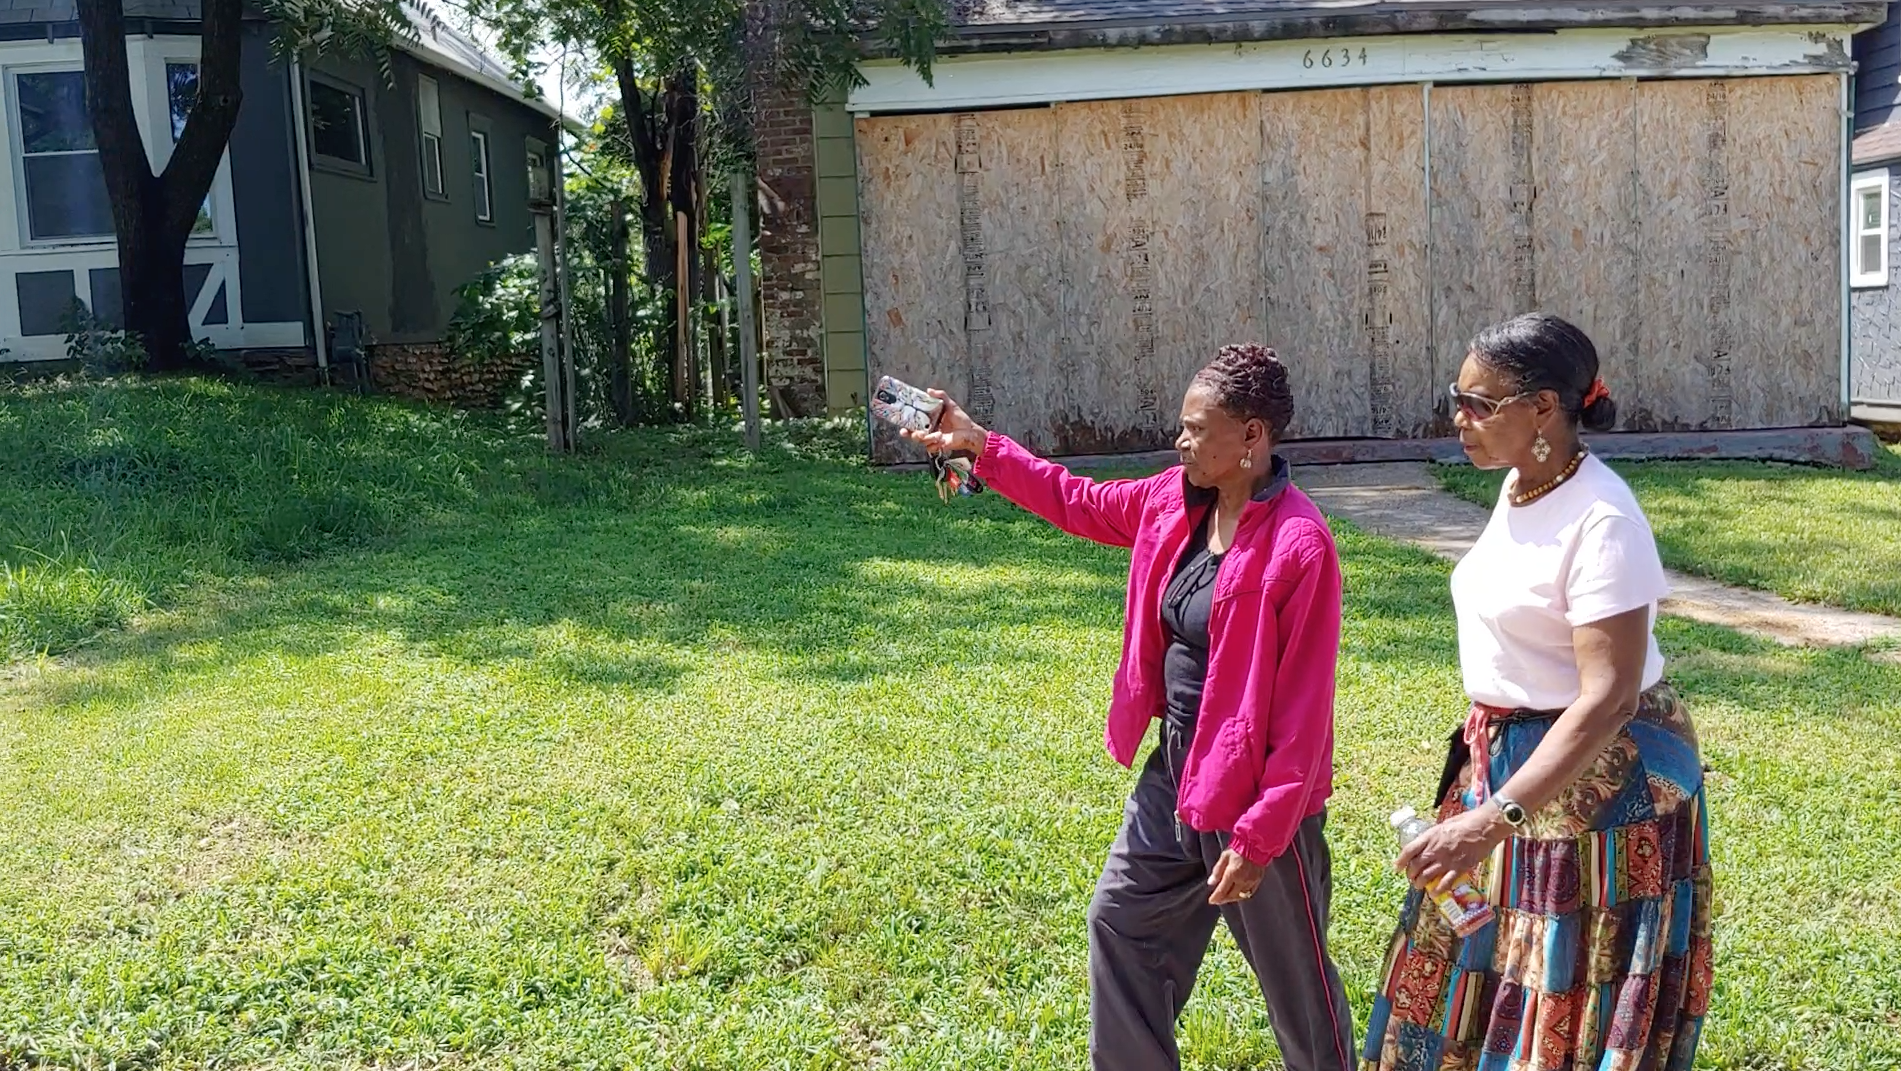 NUFA neighborhood residents Nina Whiteside-McCord and Dorothy Thurman take stock of restoration efforts under way in the 6600 block of Broadmoor Road in Kansas City.